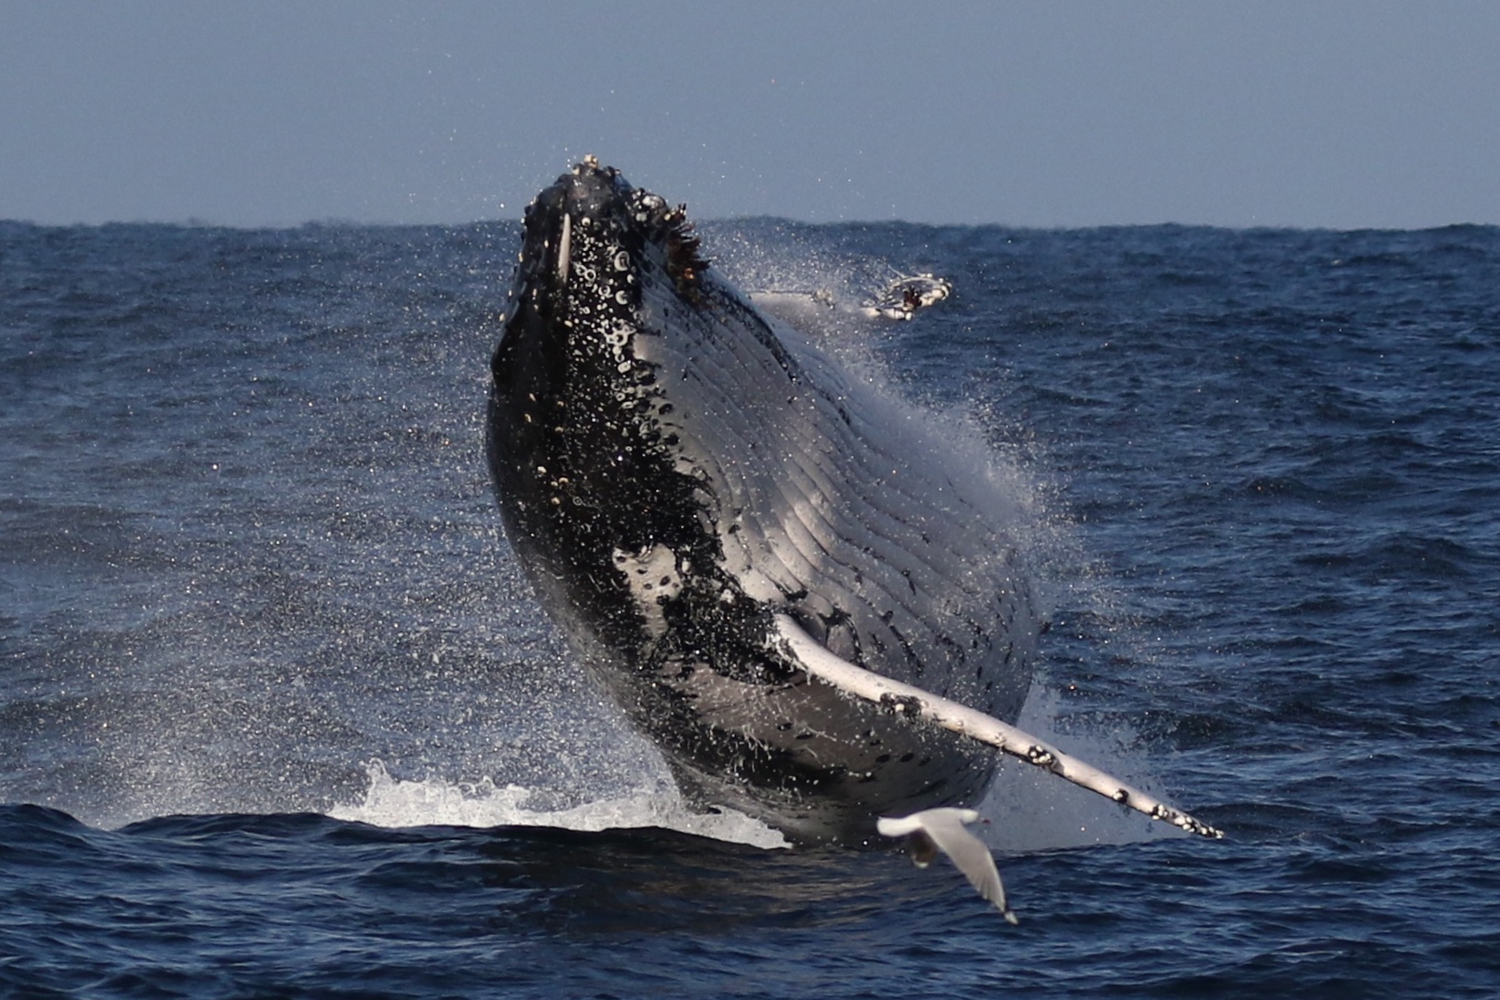 Sydney is blessed with amazing wildlife, like this humpback whale Rachelle snapped frolicking in Sydney waters © Rachelle Mackintosh